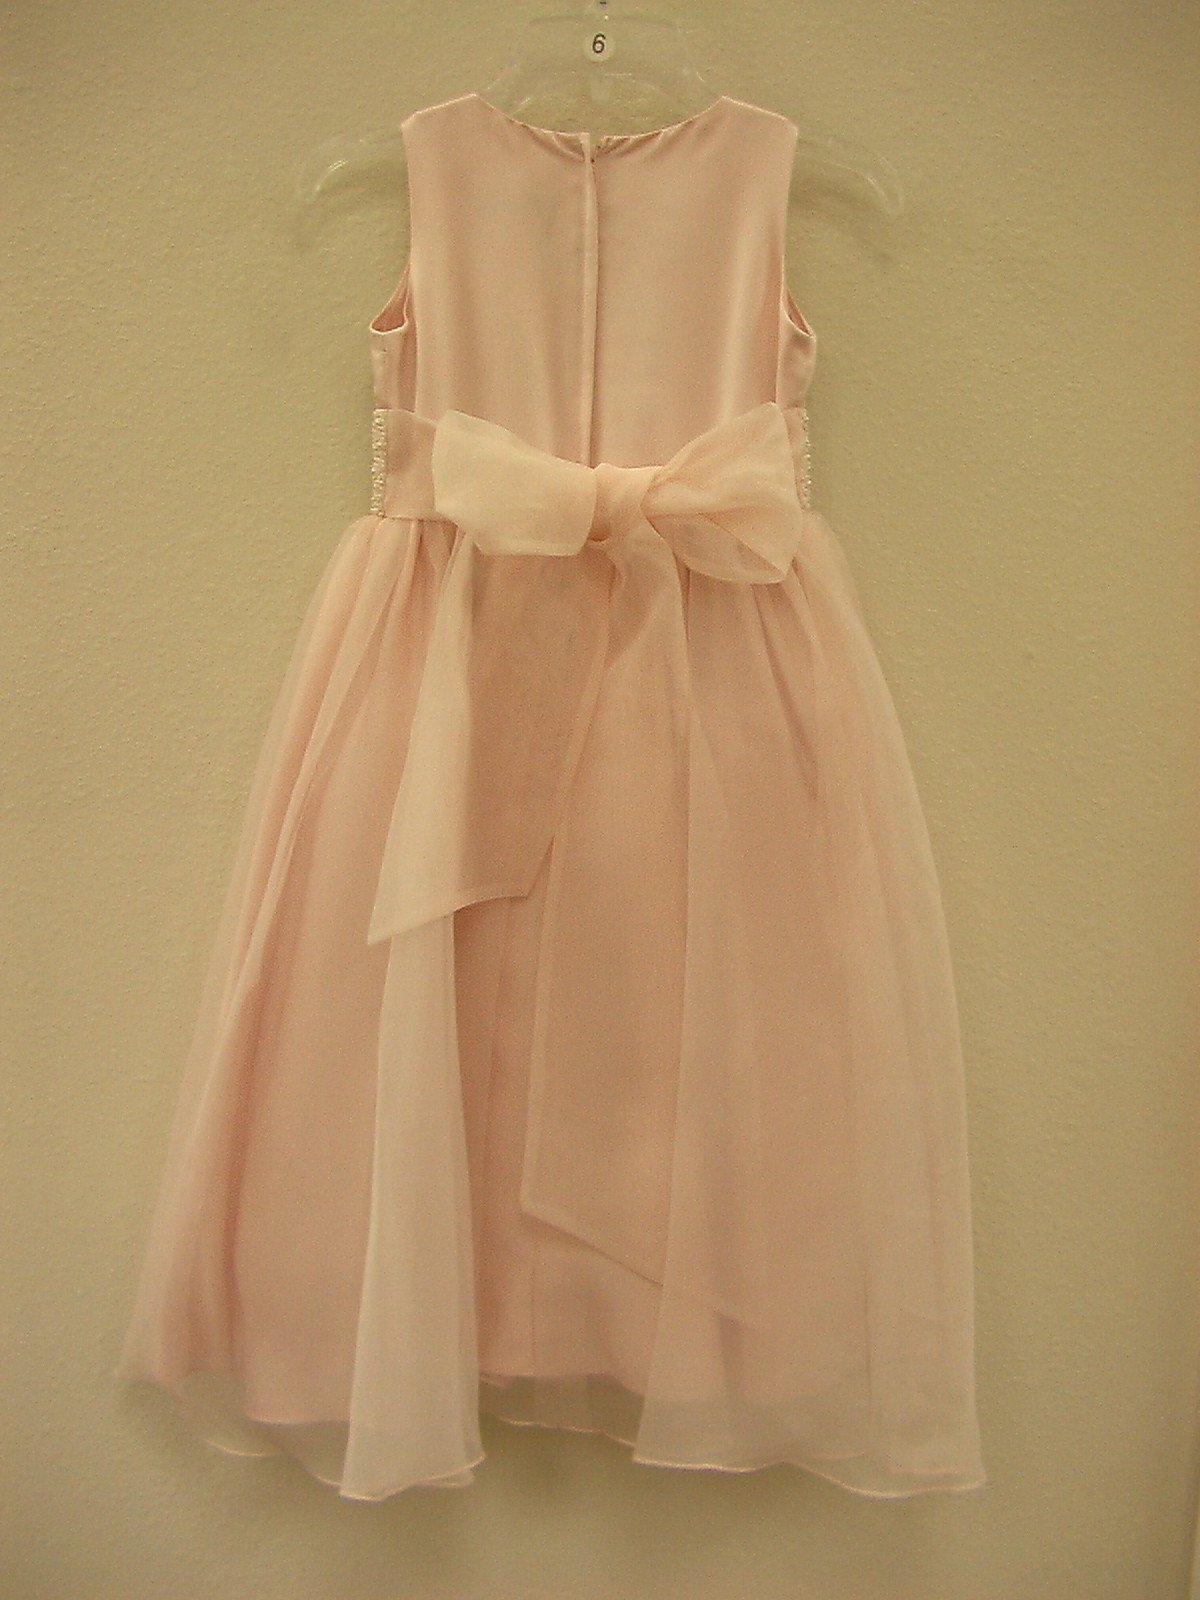 US Angels 172 Blush Pink size 6 In Stock Flower Girl Dress - Tom's Bridal